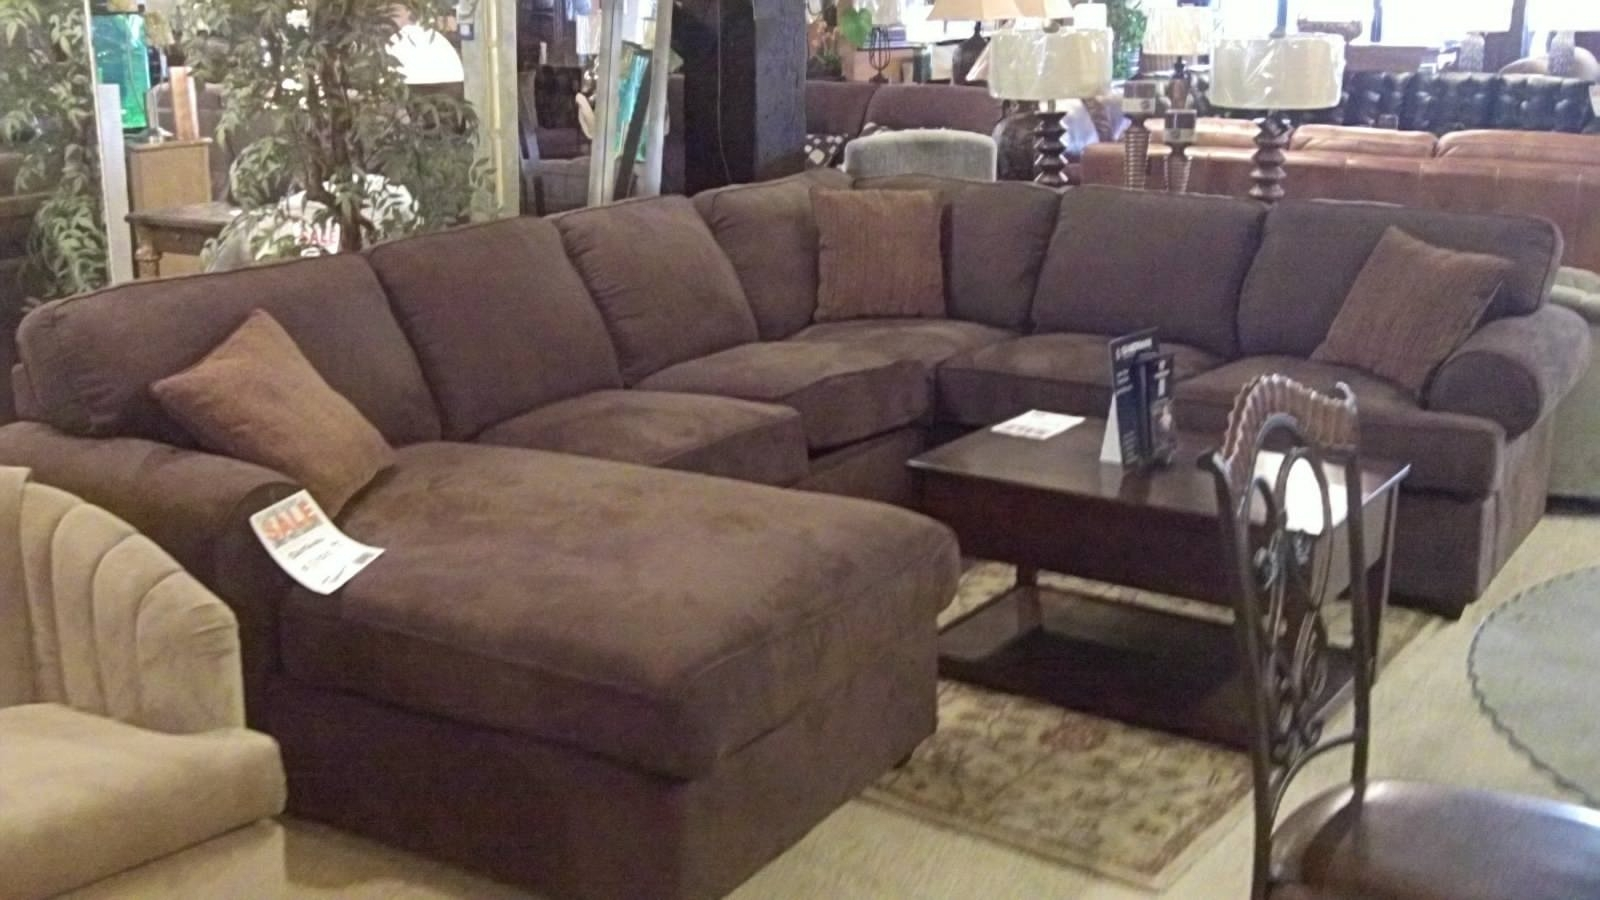 Sectional Sofa Design: Oversized Sectional Sofas Recliners Sale with regard to Oversized Sectional Sofas (Image 8 of 10)